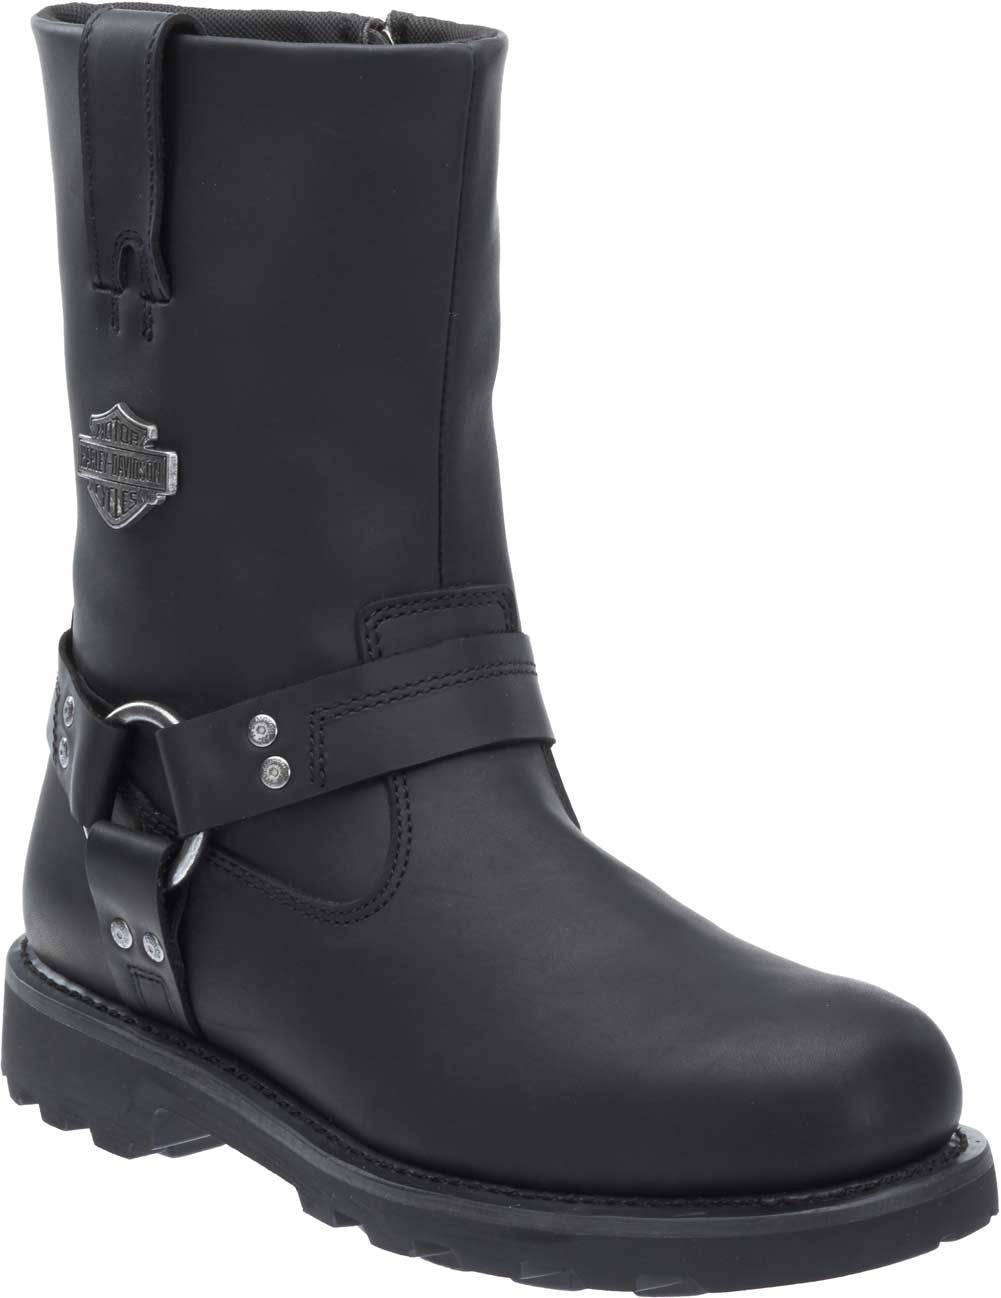 a3bf6548a16 Details about Harley-Davidson Men's Mansfield Black Performance Motorcycle  Boots D96112